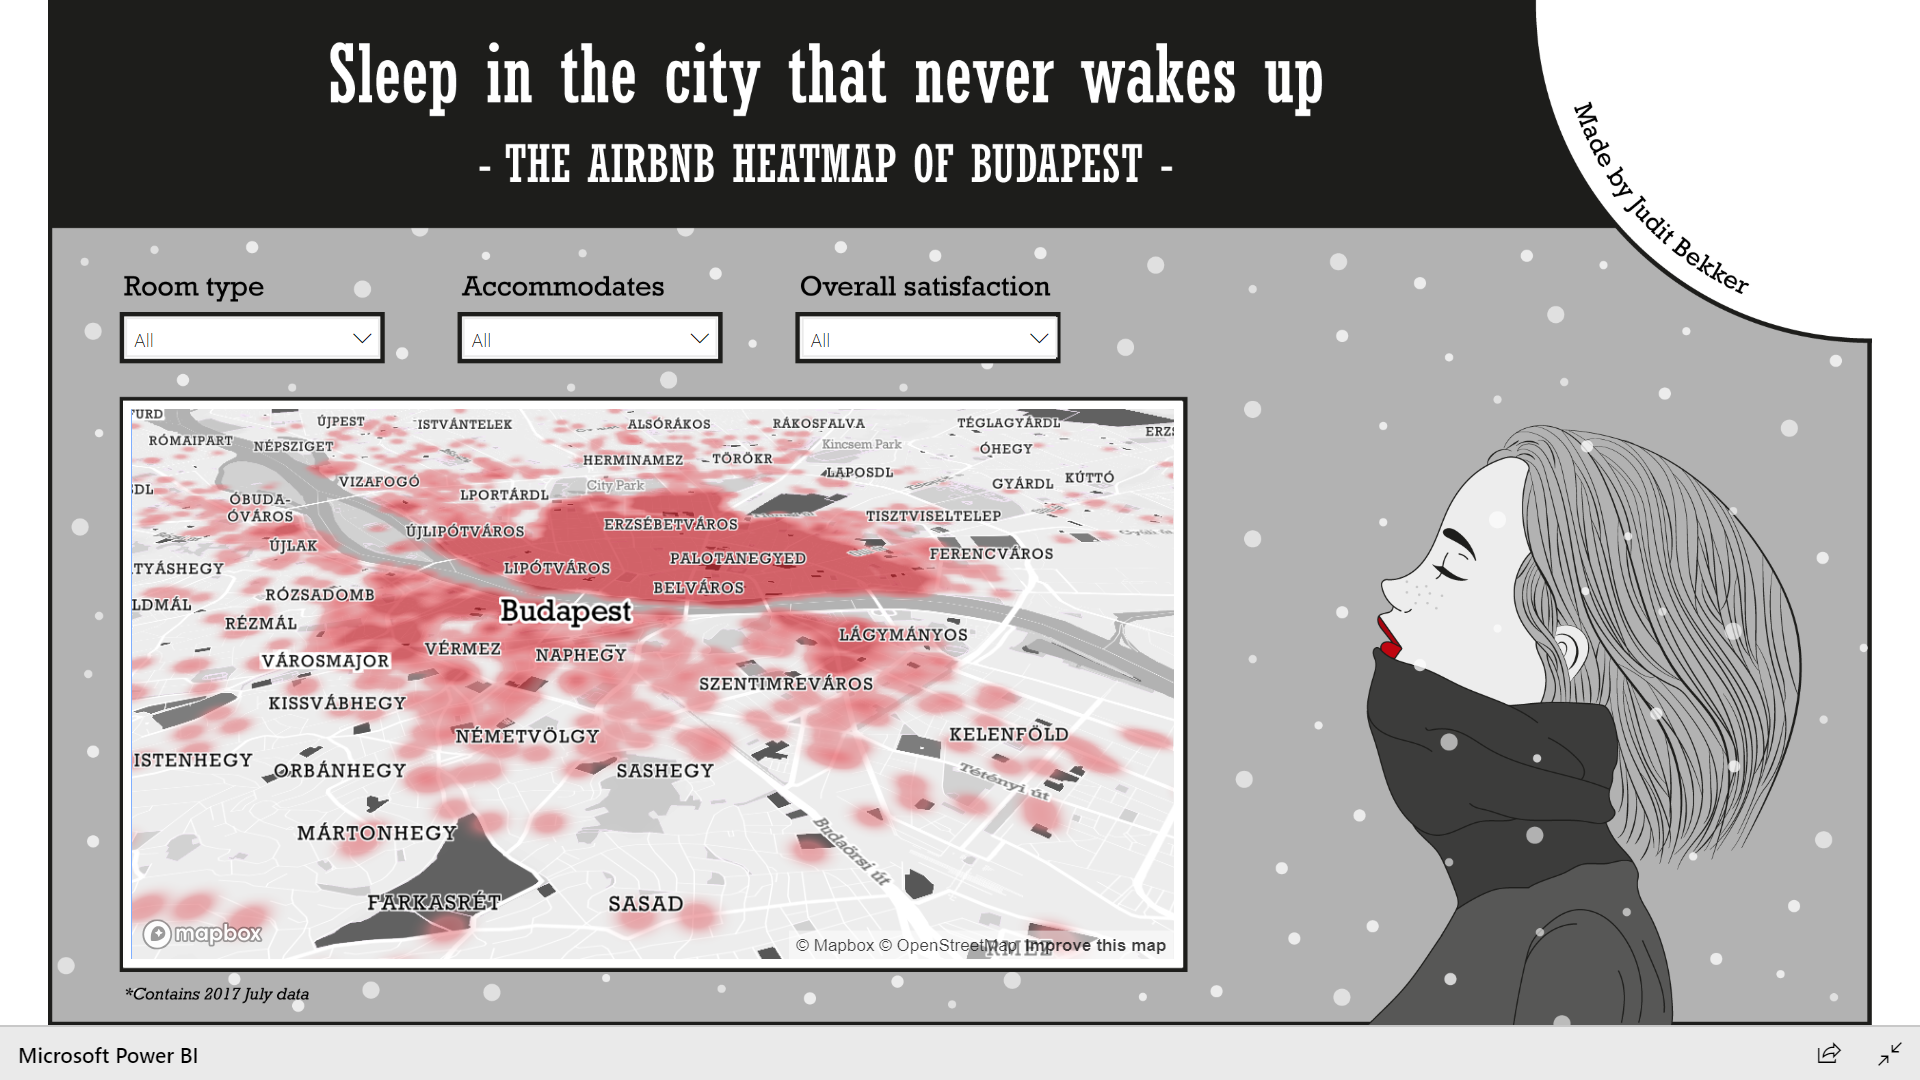 Who wants to sleep in the city that never wakes up? - The airbnb map of Budapest